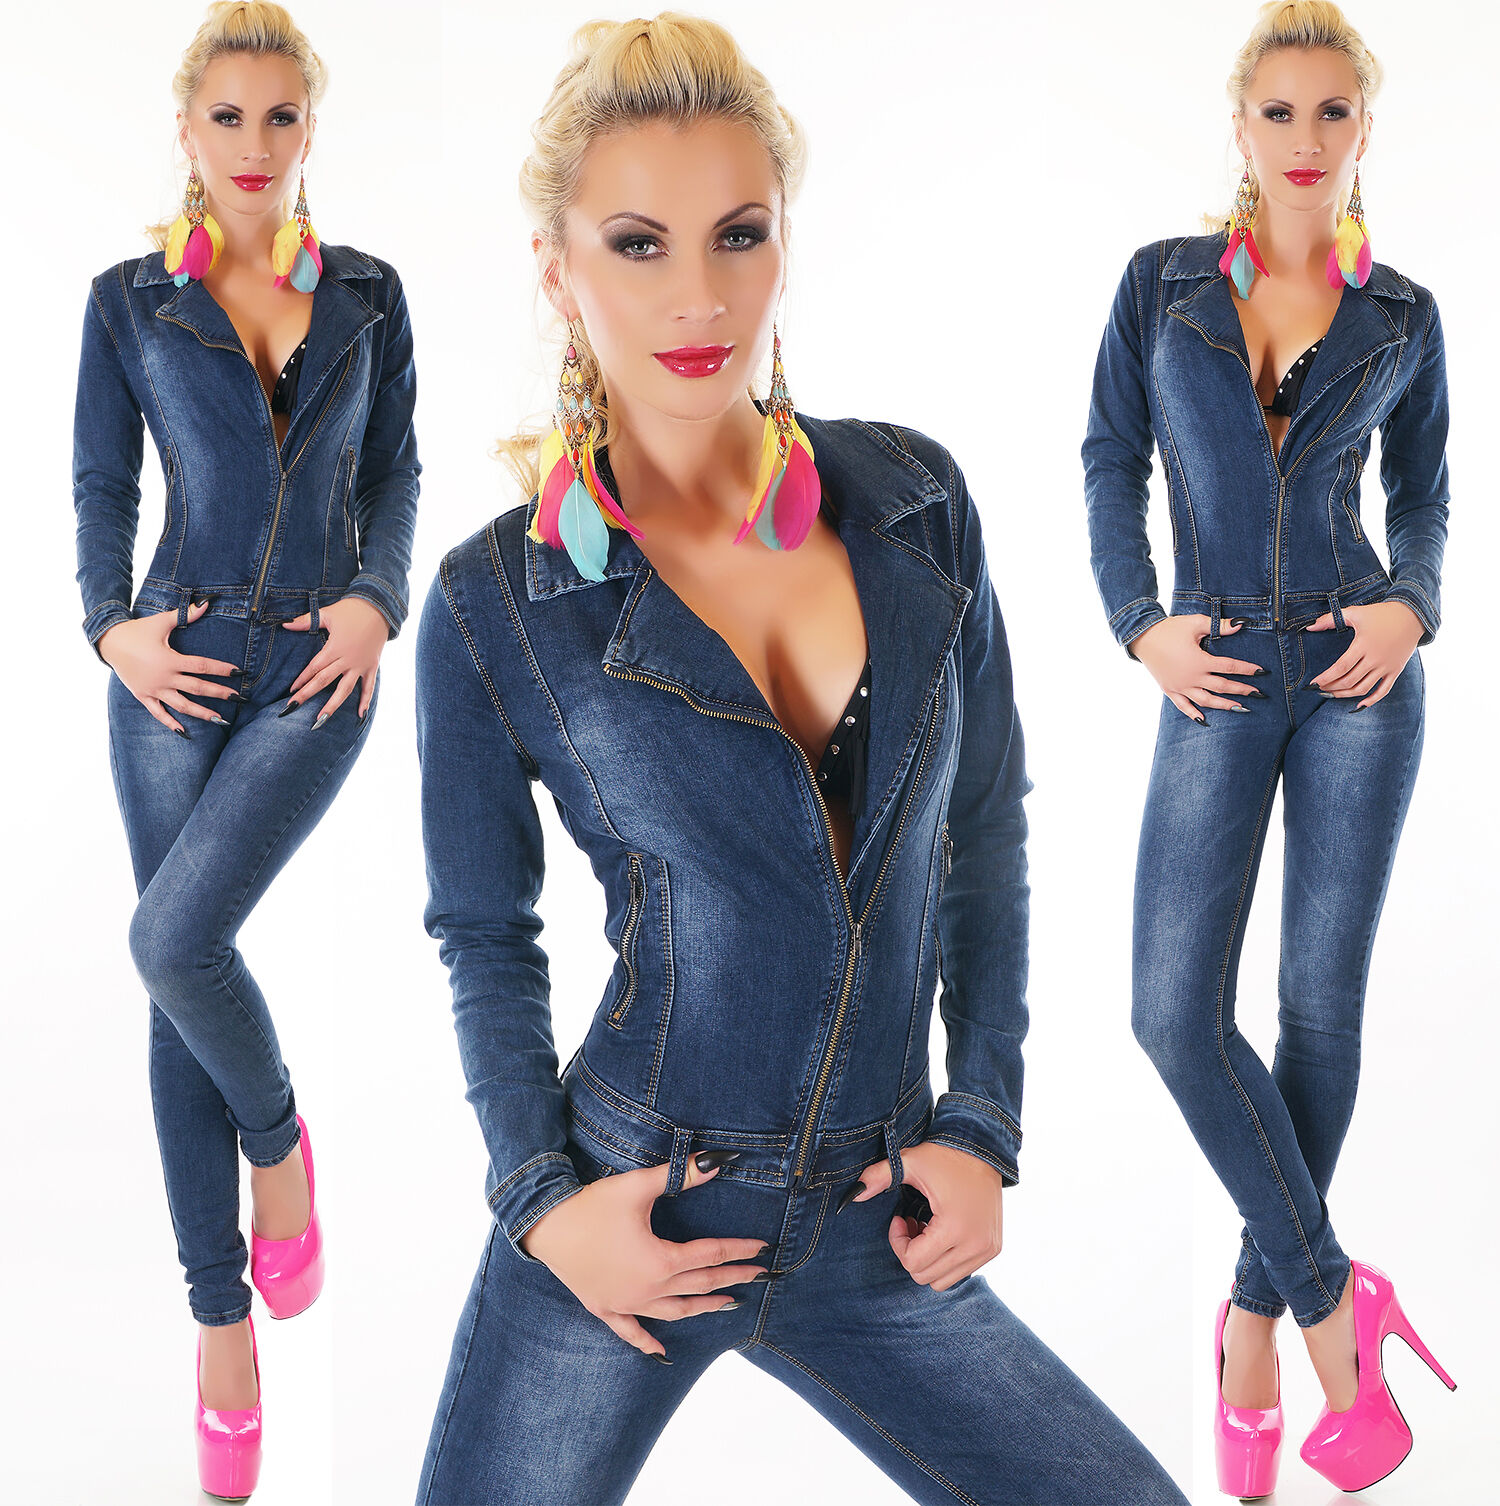 Women's Asymmetrical Zip Stretch Denim Jeans Jumpsuit - s M L XL